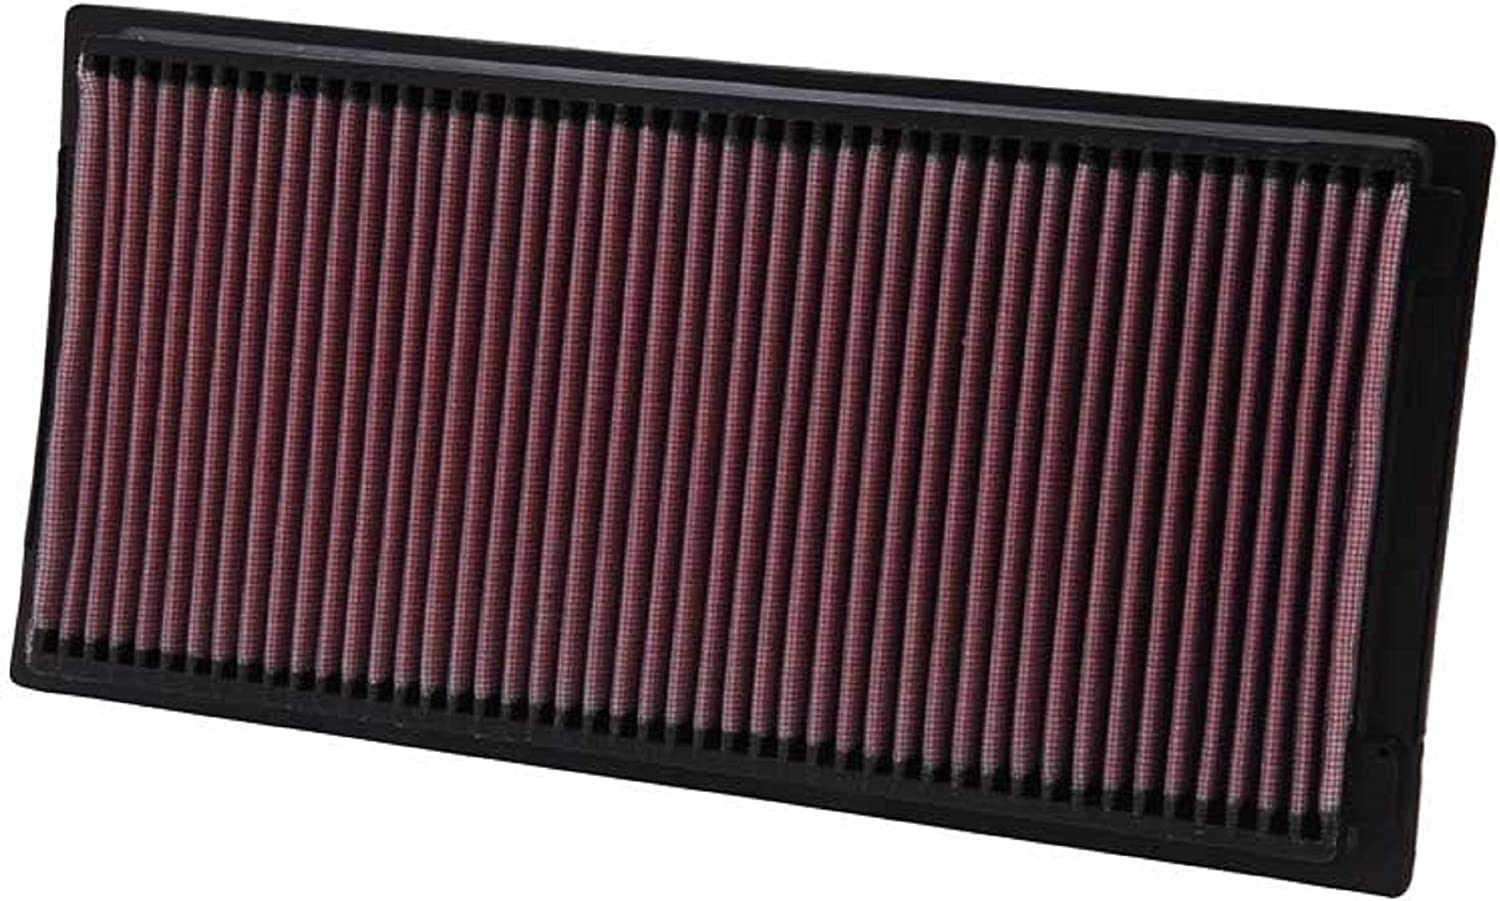 B000182DQ0 K&N Engine Air Filter: High Performance, Premium, Washable, Replacement Filter: 1994-2002 DODGE/CHEVROLET (Ram 2500, Ram 3500, Ram 1500, Camaro), 33-2084 71mGx7sb-BL.SL1500_